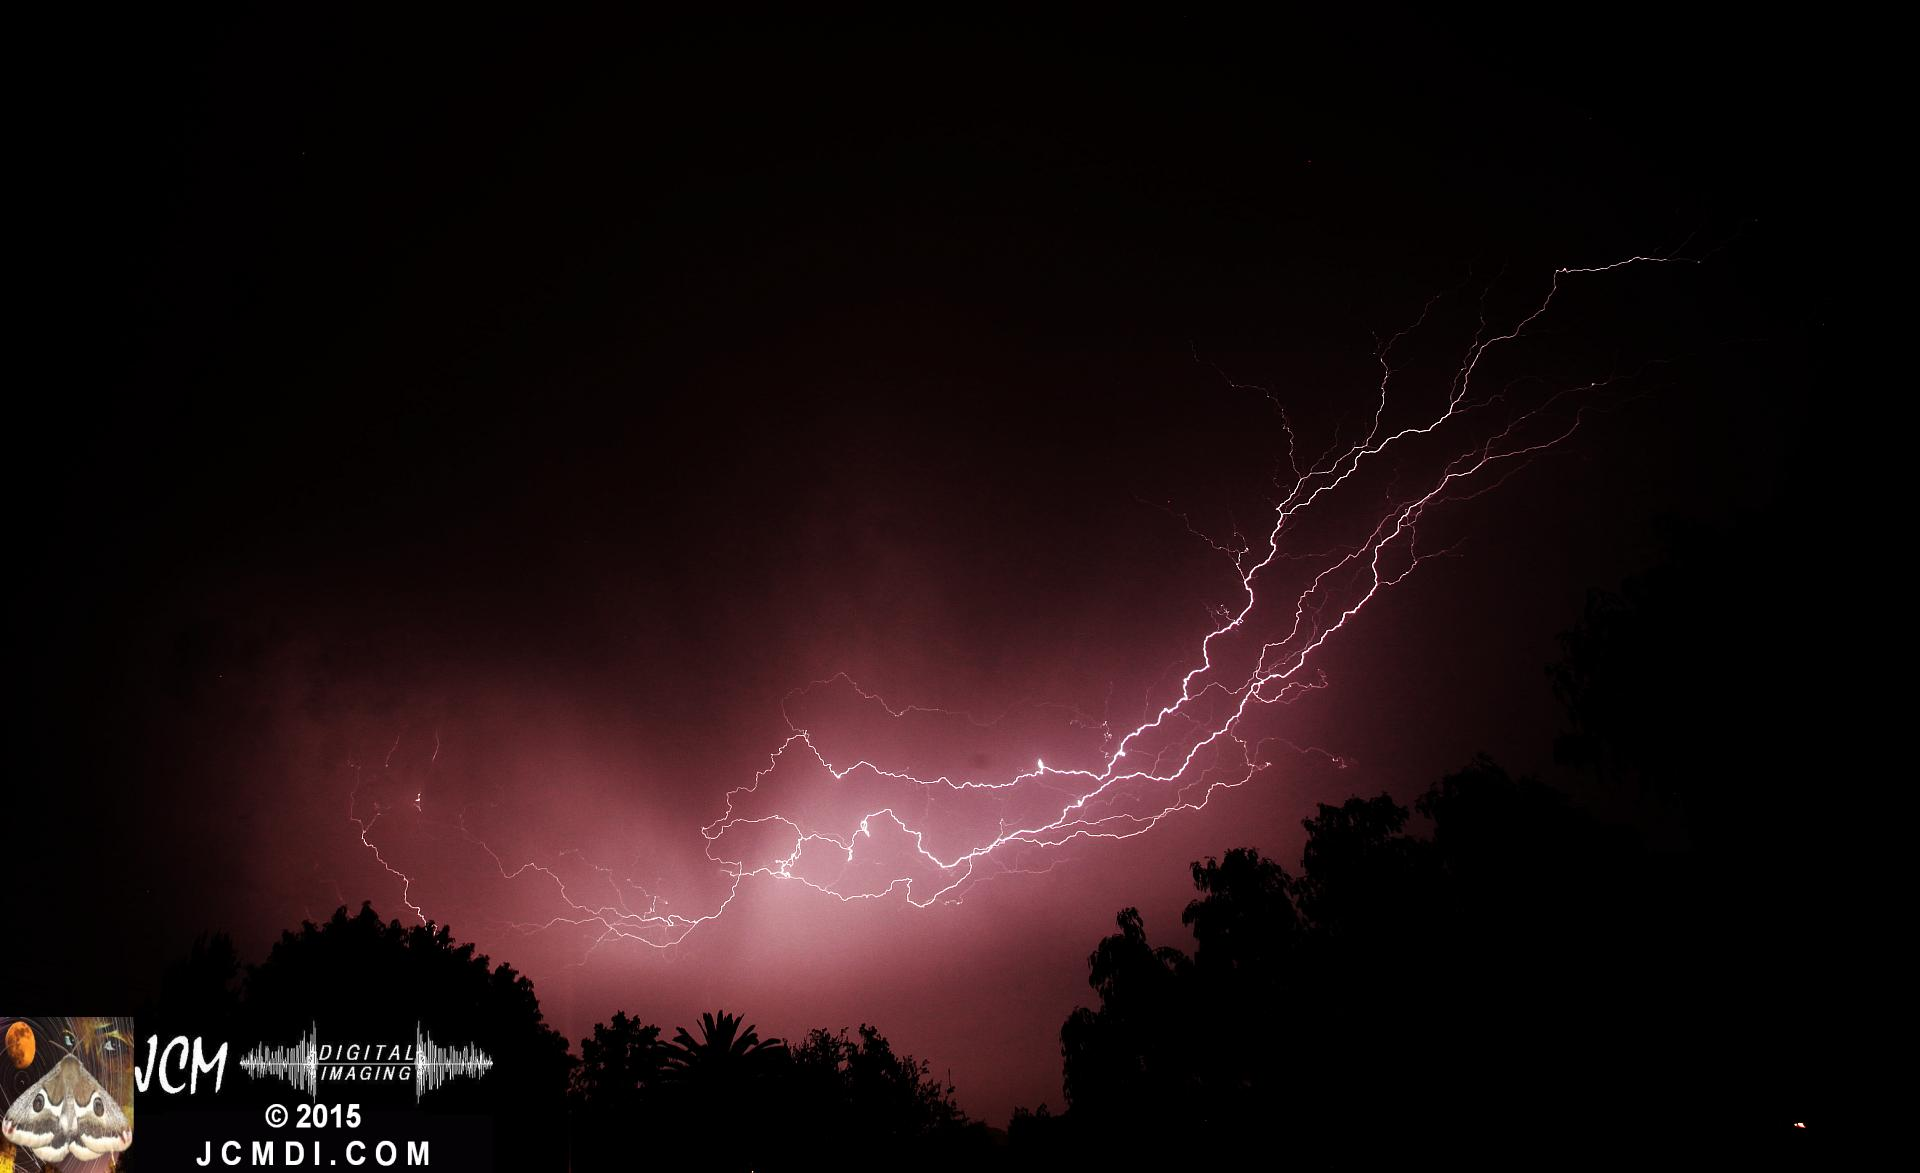 Long exposure lightning image from March 18 2015 Santa Clarita JCMDI.COM